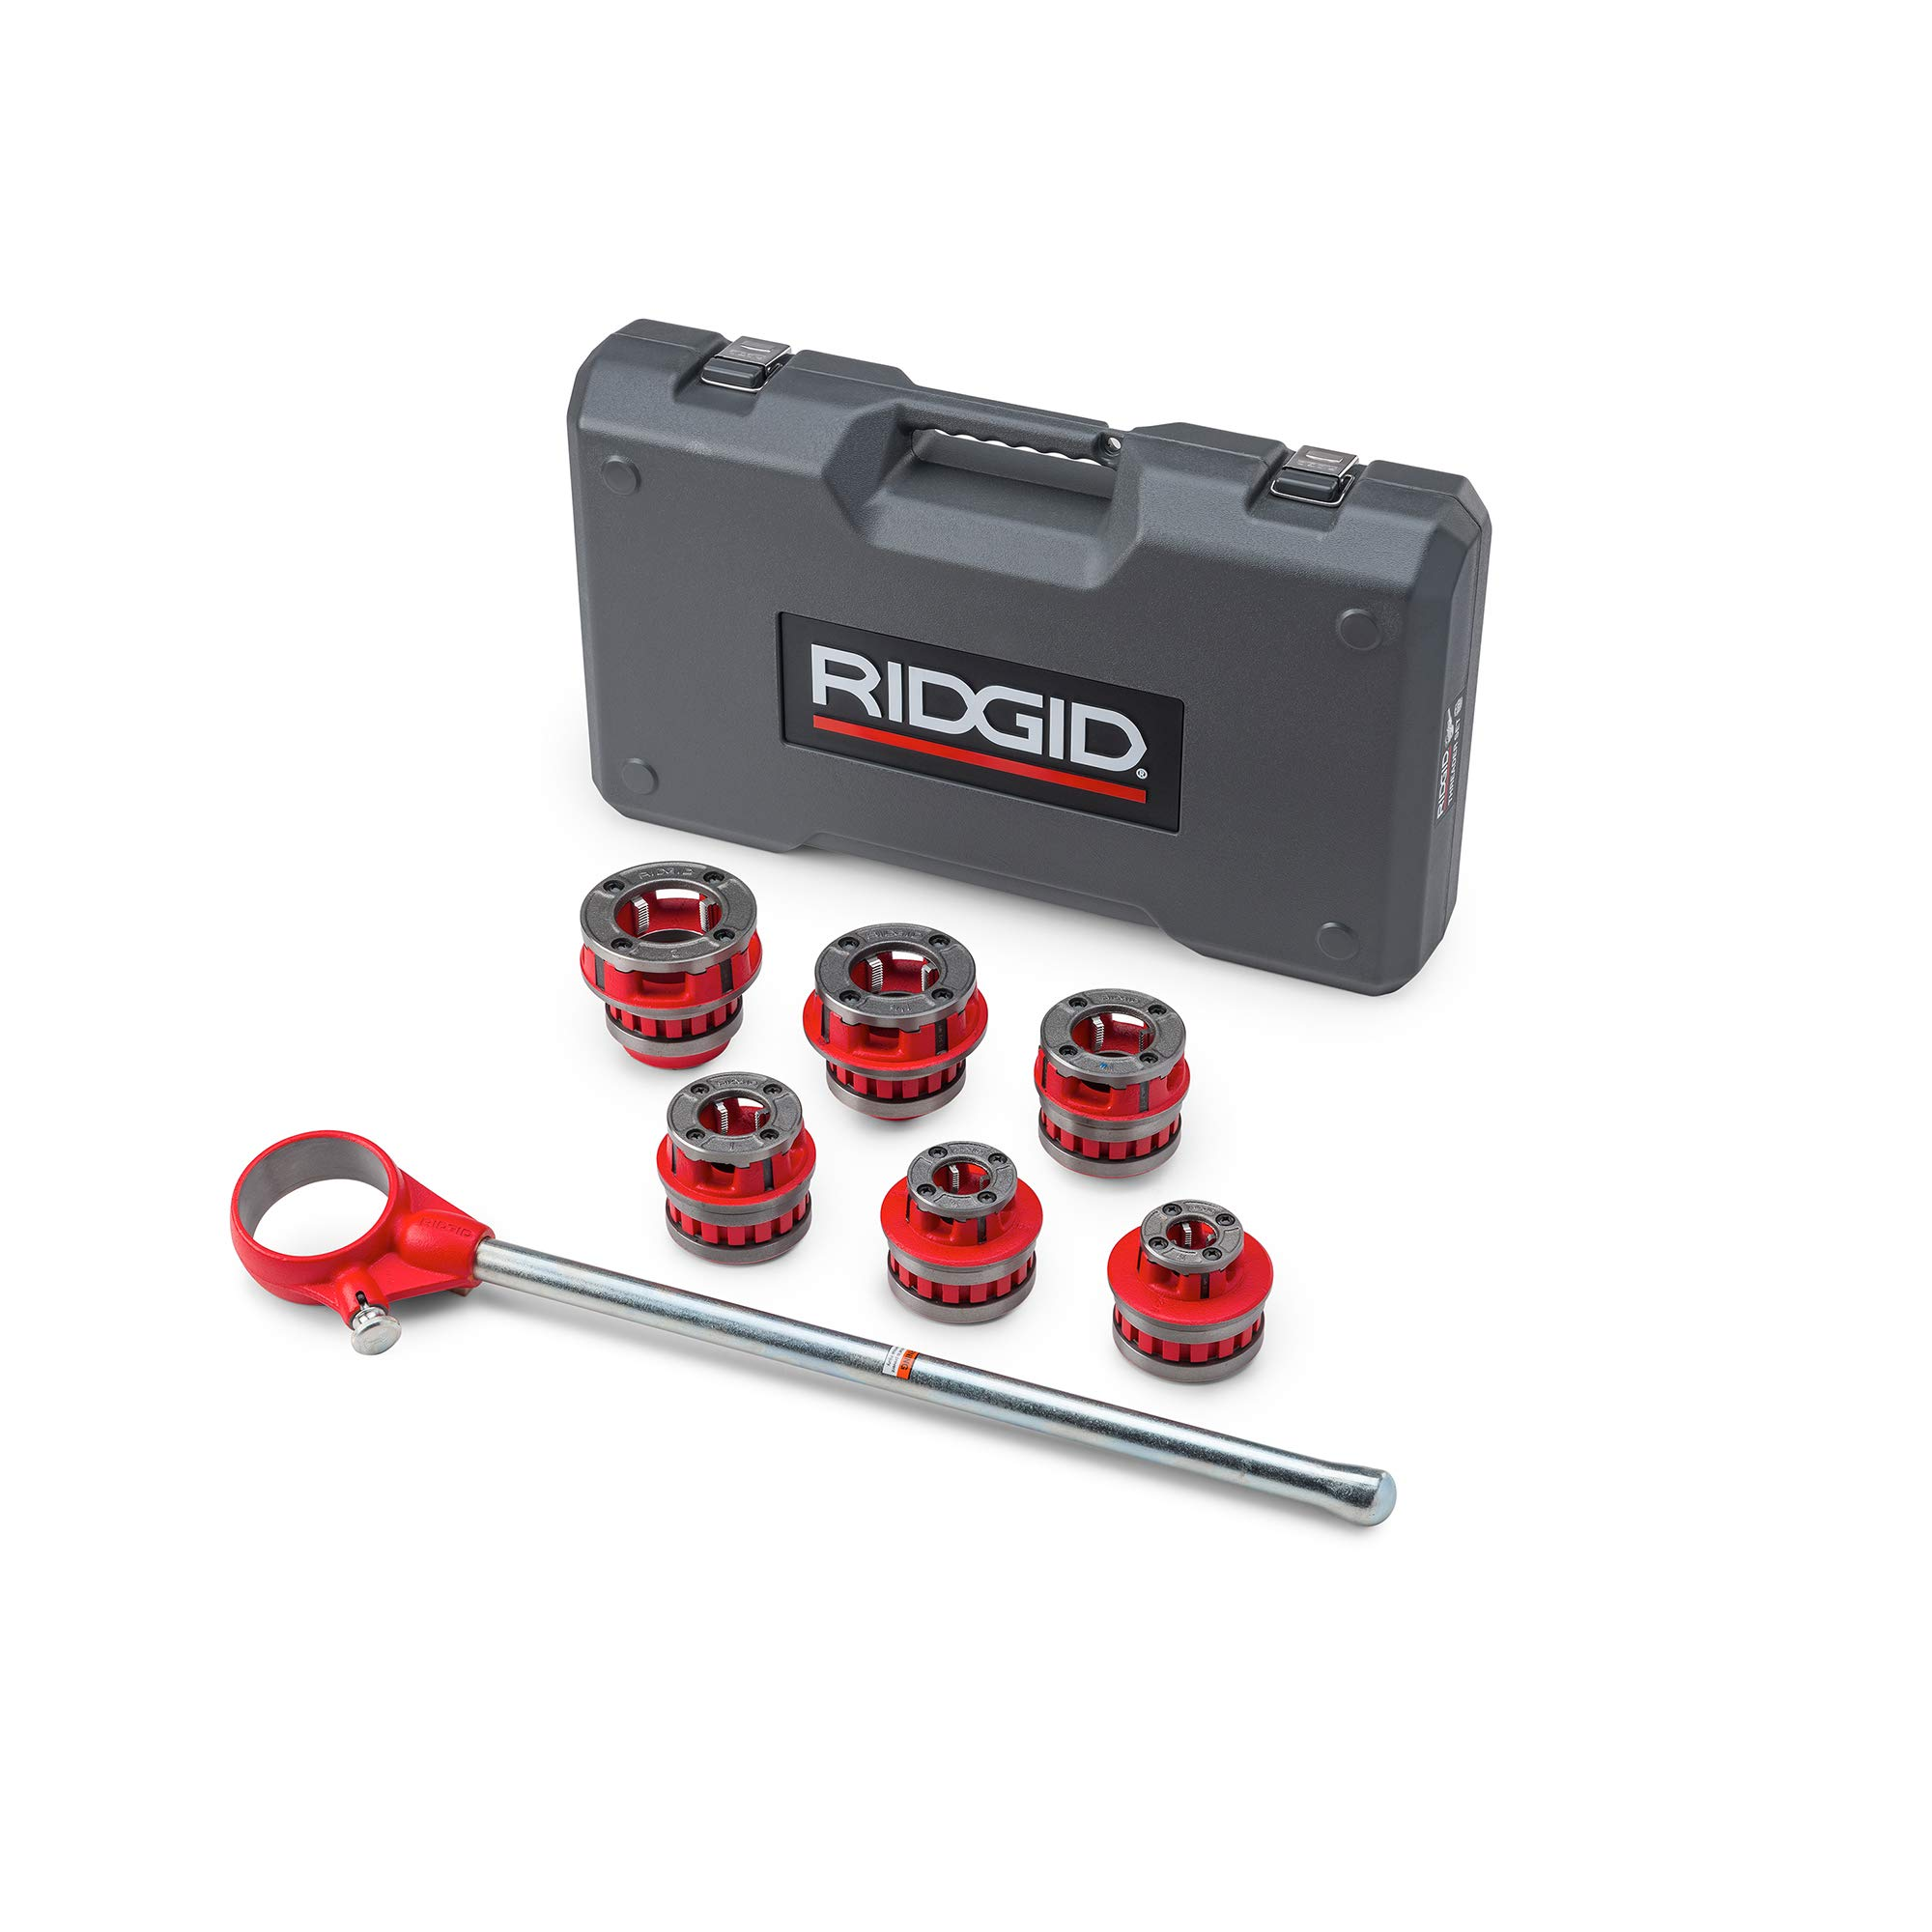 RIDGID 36475 Exposed Ratchet Threader Set, Model 12-R Ratcheting Pipe Threading Set of 1/2-Inch to 2-Inch NPT Pipe Threading Dies and Manual Ratcheting Pipe Threader with Carrying Case by Ridgid (Image #3)